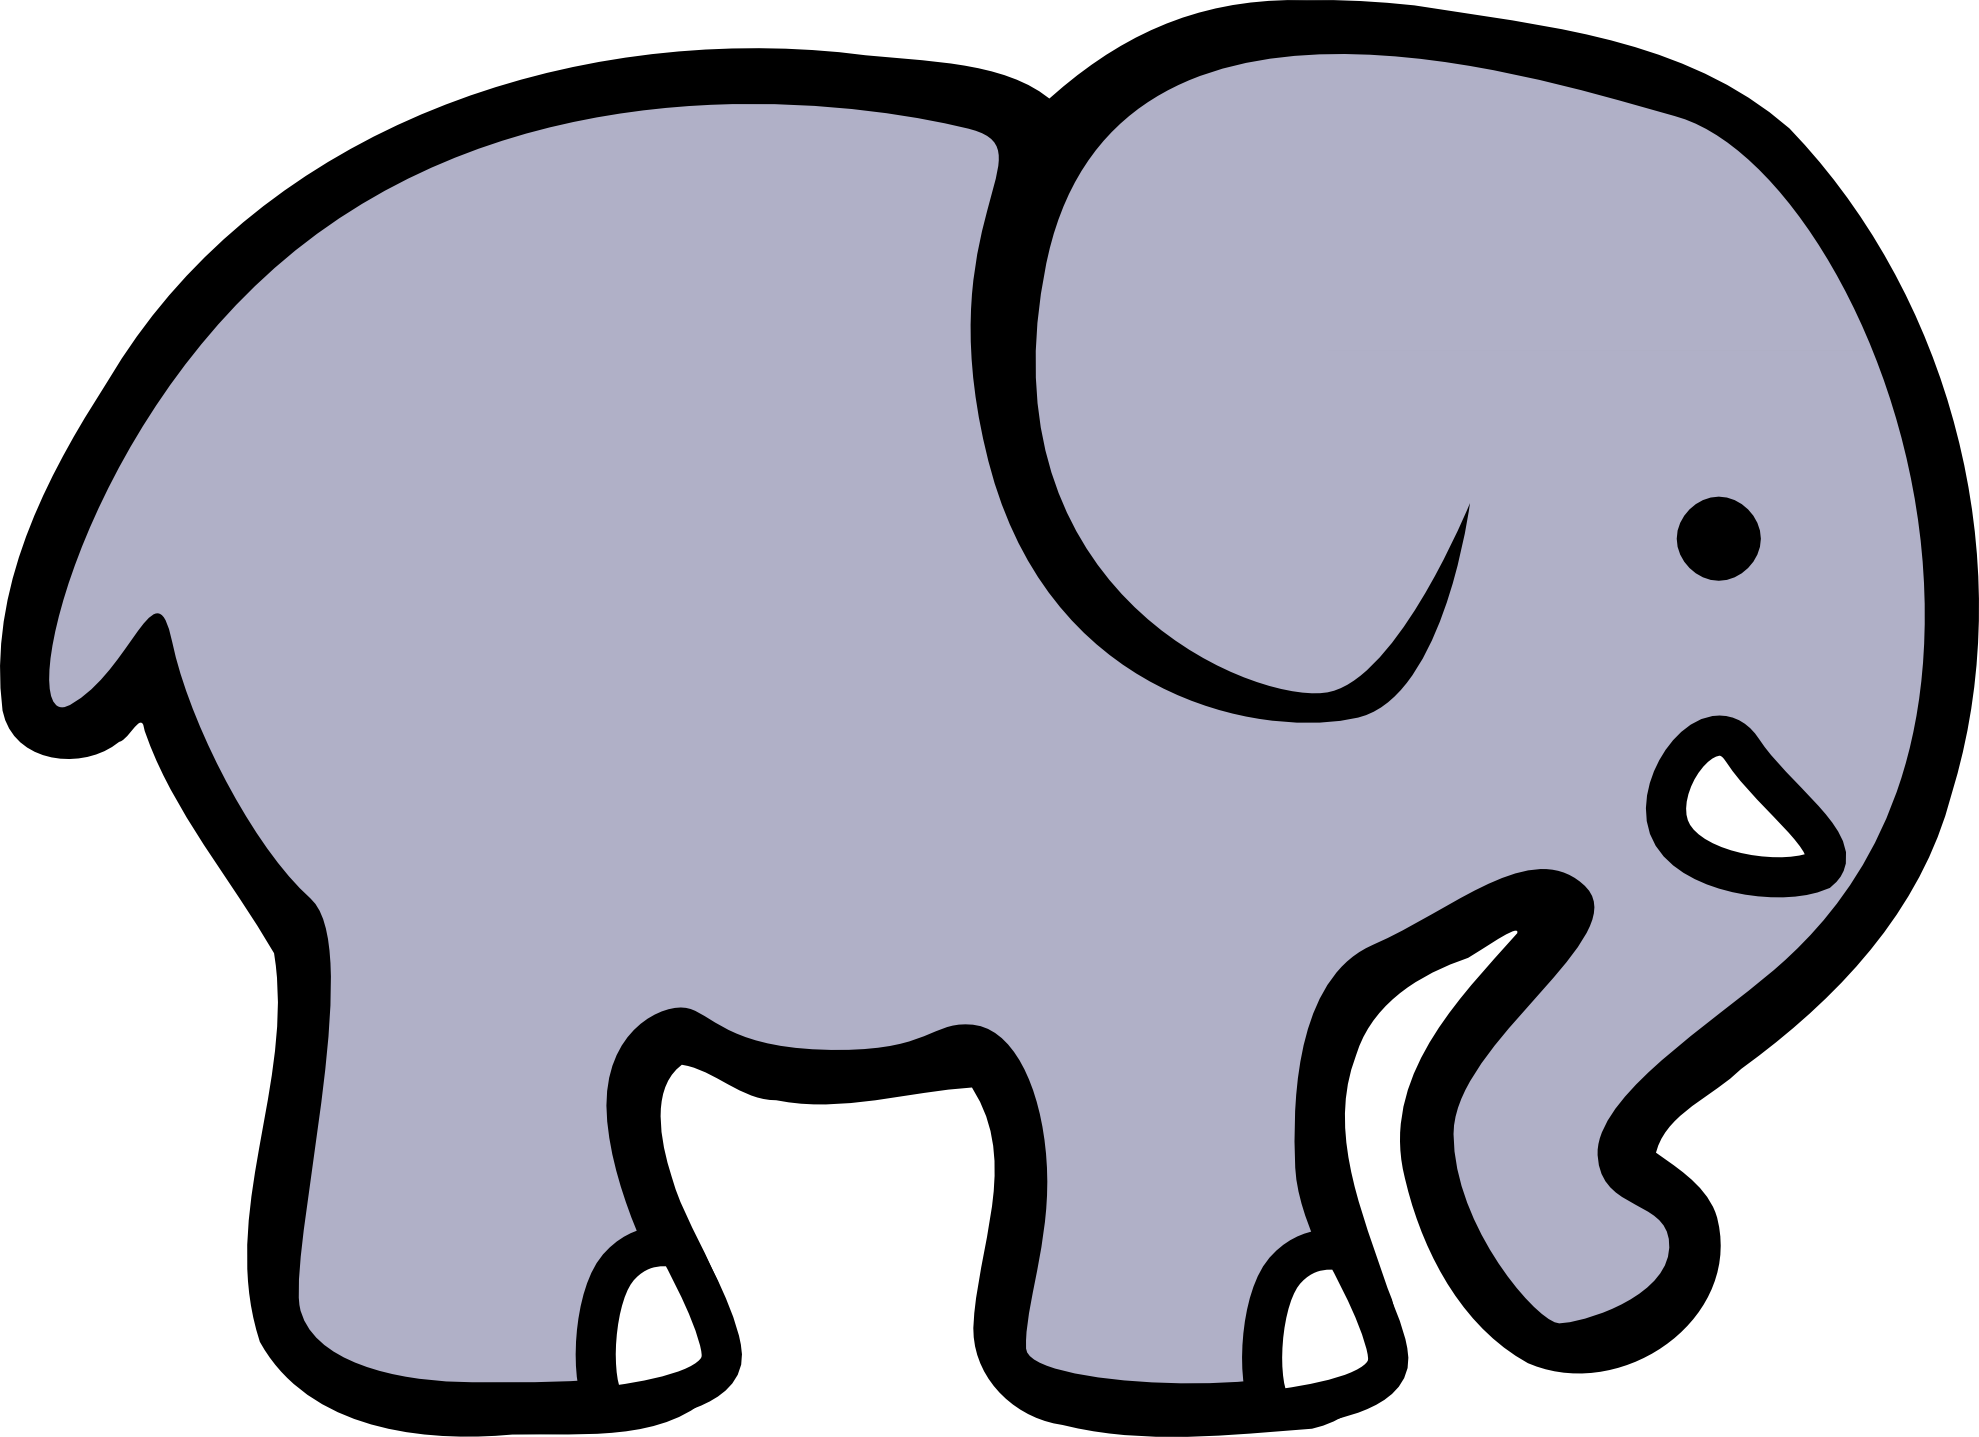 clipart Elephant Clip Art Silhouette at GetDrawings